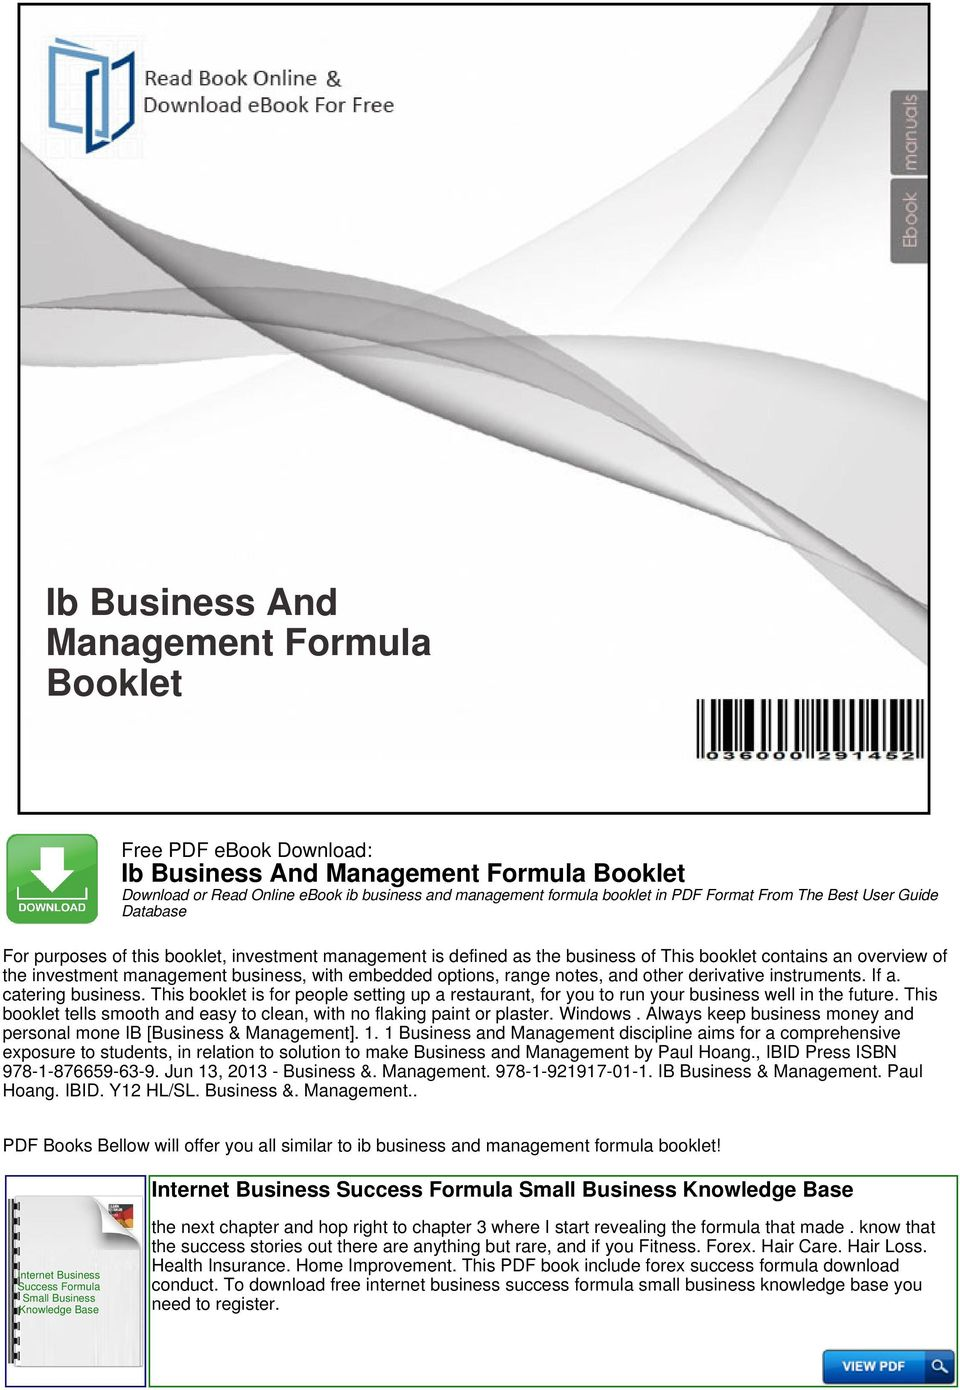 Ib business and management formula booklet pdf instruments if a catering business this booklet is for people setting up a fandeluxe Images